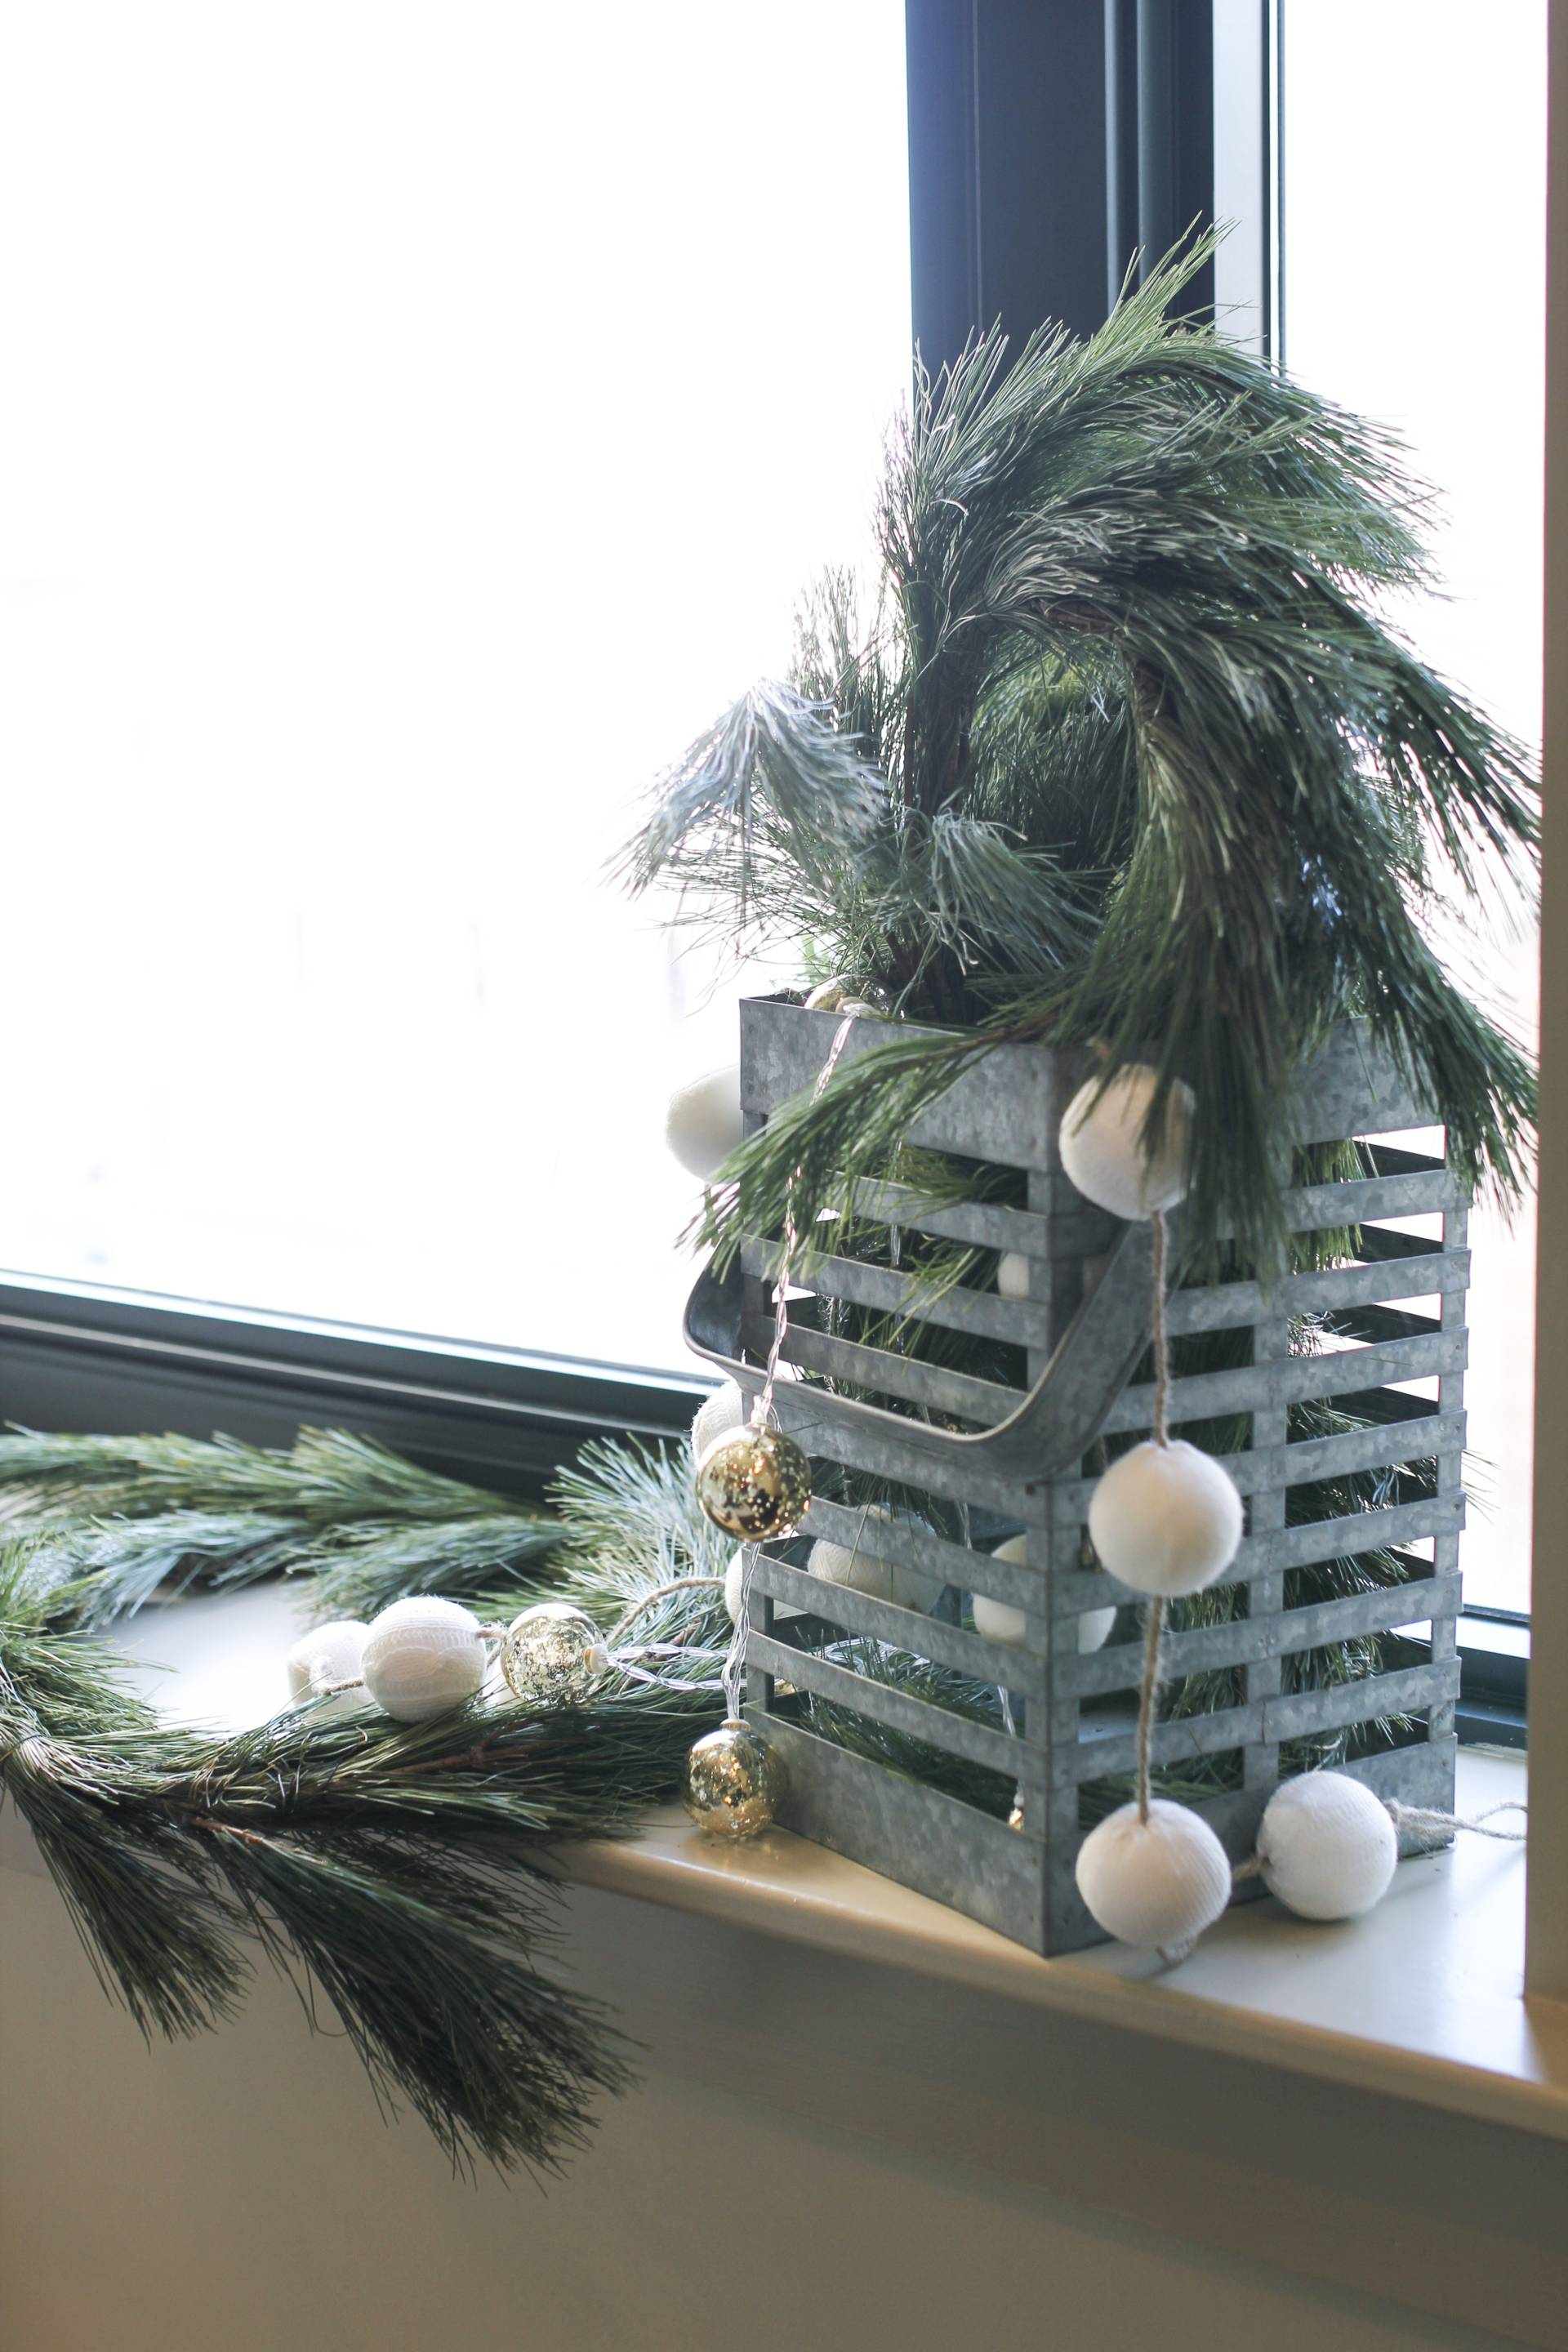 condo christmas: how to deck the halls in a small space - dashing